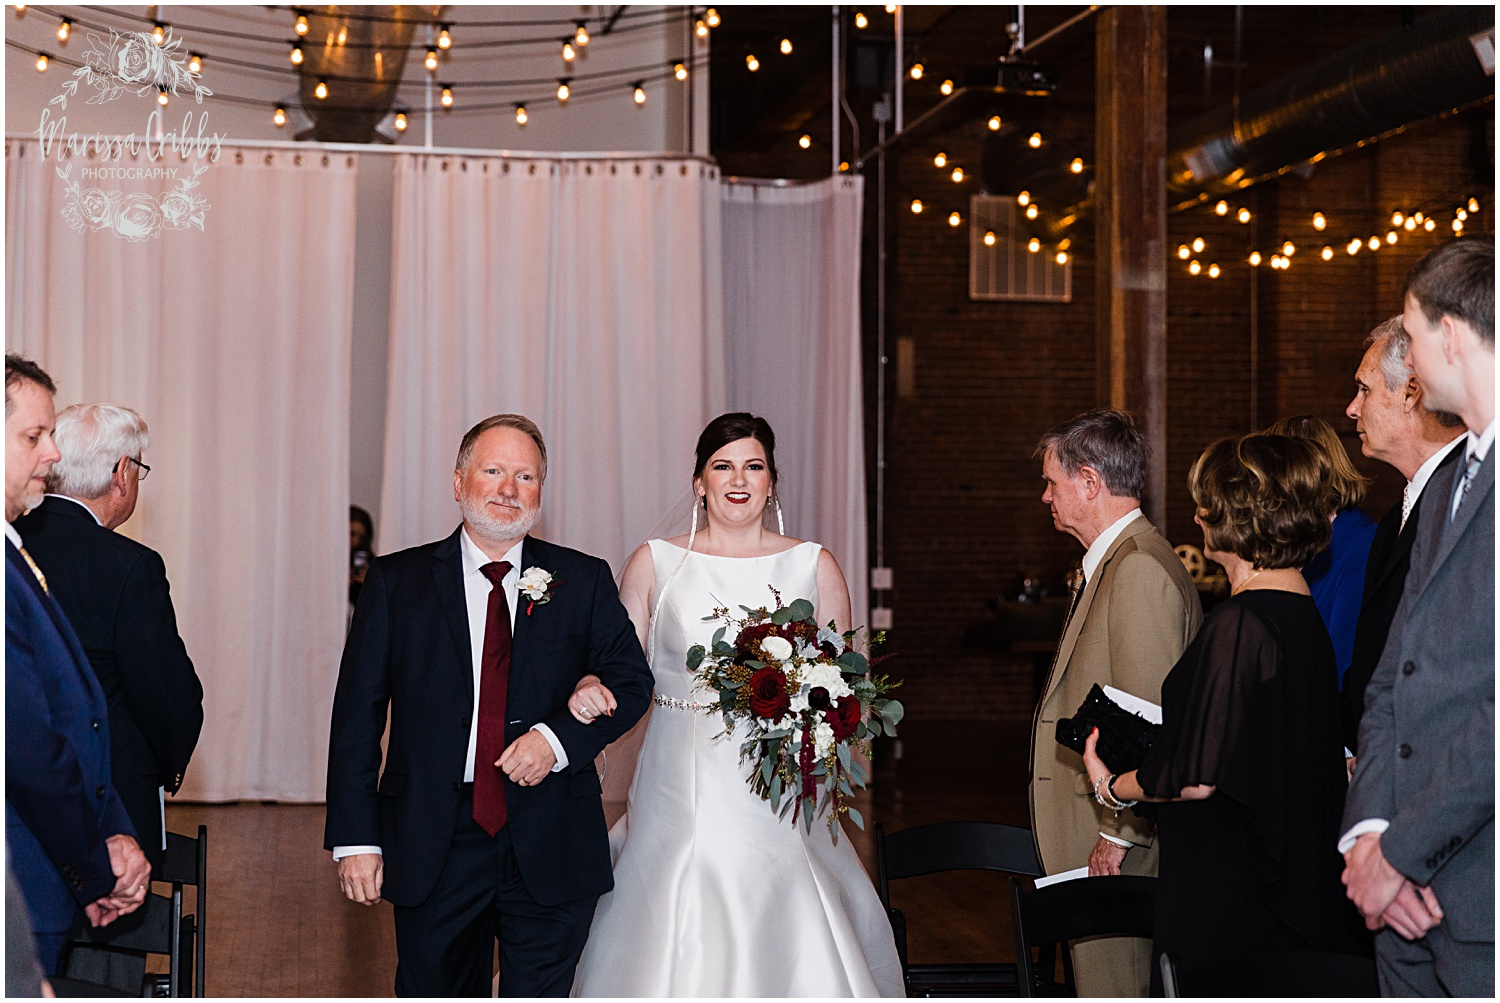 EVERLY EVENT SPACE WEDDING | KATHRYN & KEVIN | MARISSA CRIBBS PHOTOGRAPHY_7425.jpg